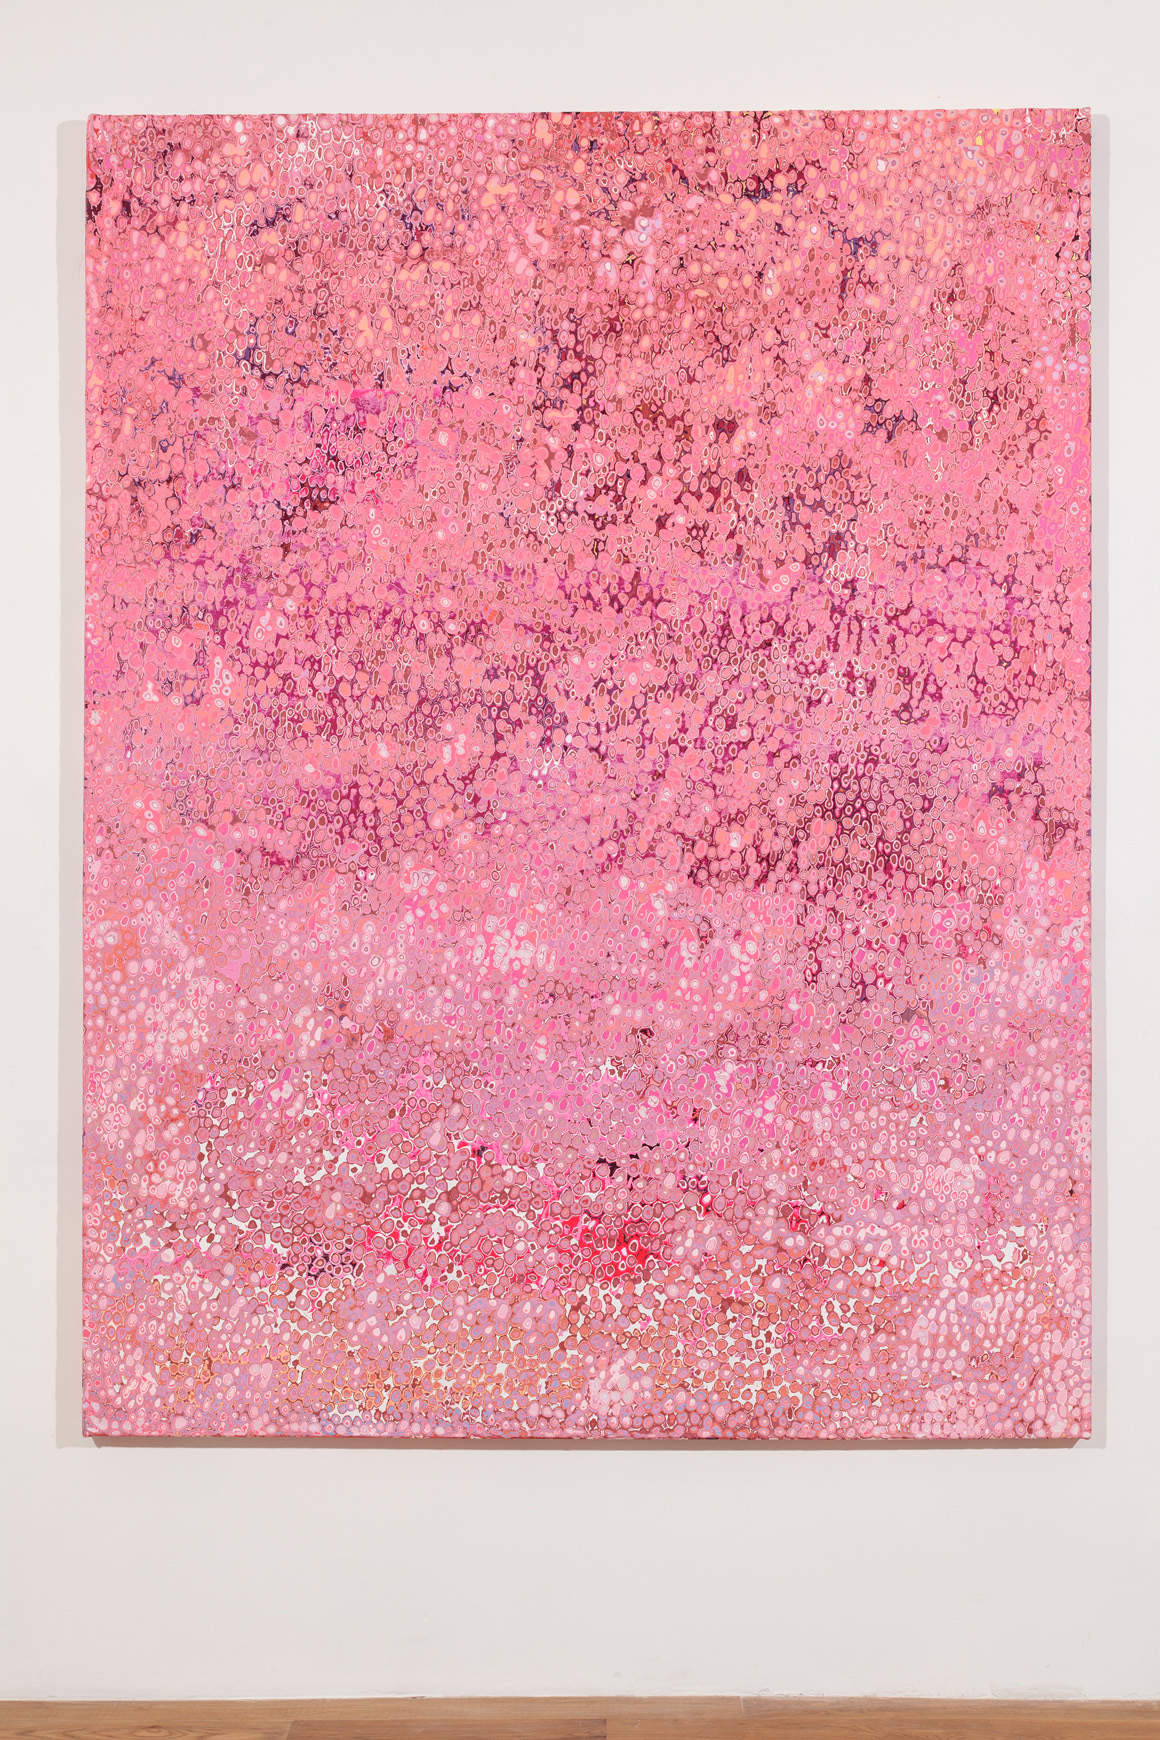 "<p><span class=""name"">Andrew Jensdotter</span><br><em>Millennial Pink</em><span class='media'>Latex on canvas</span>83.4 x 63.3 in (211.8 x 160.7 cm)<br>2017<br></p>"